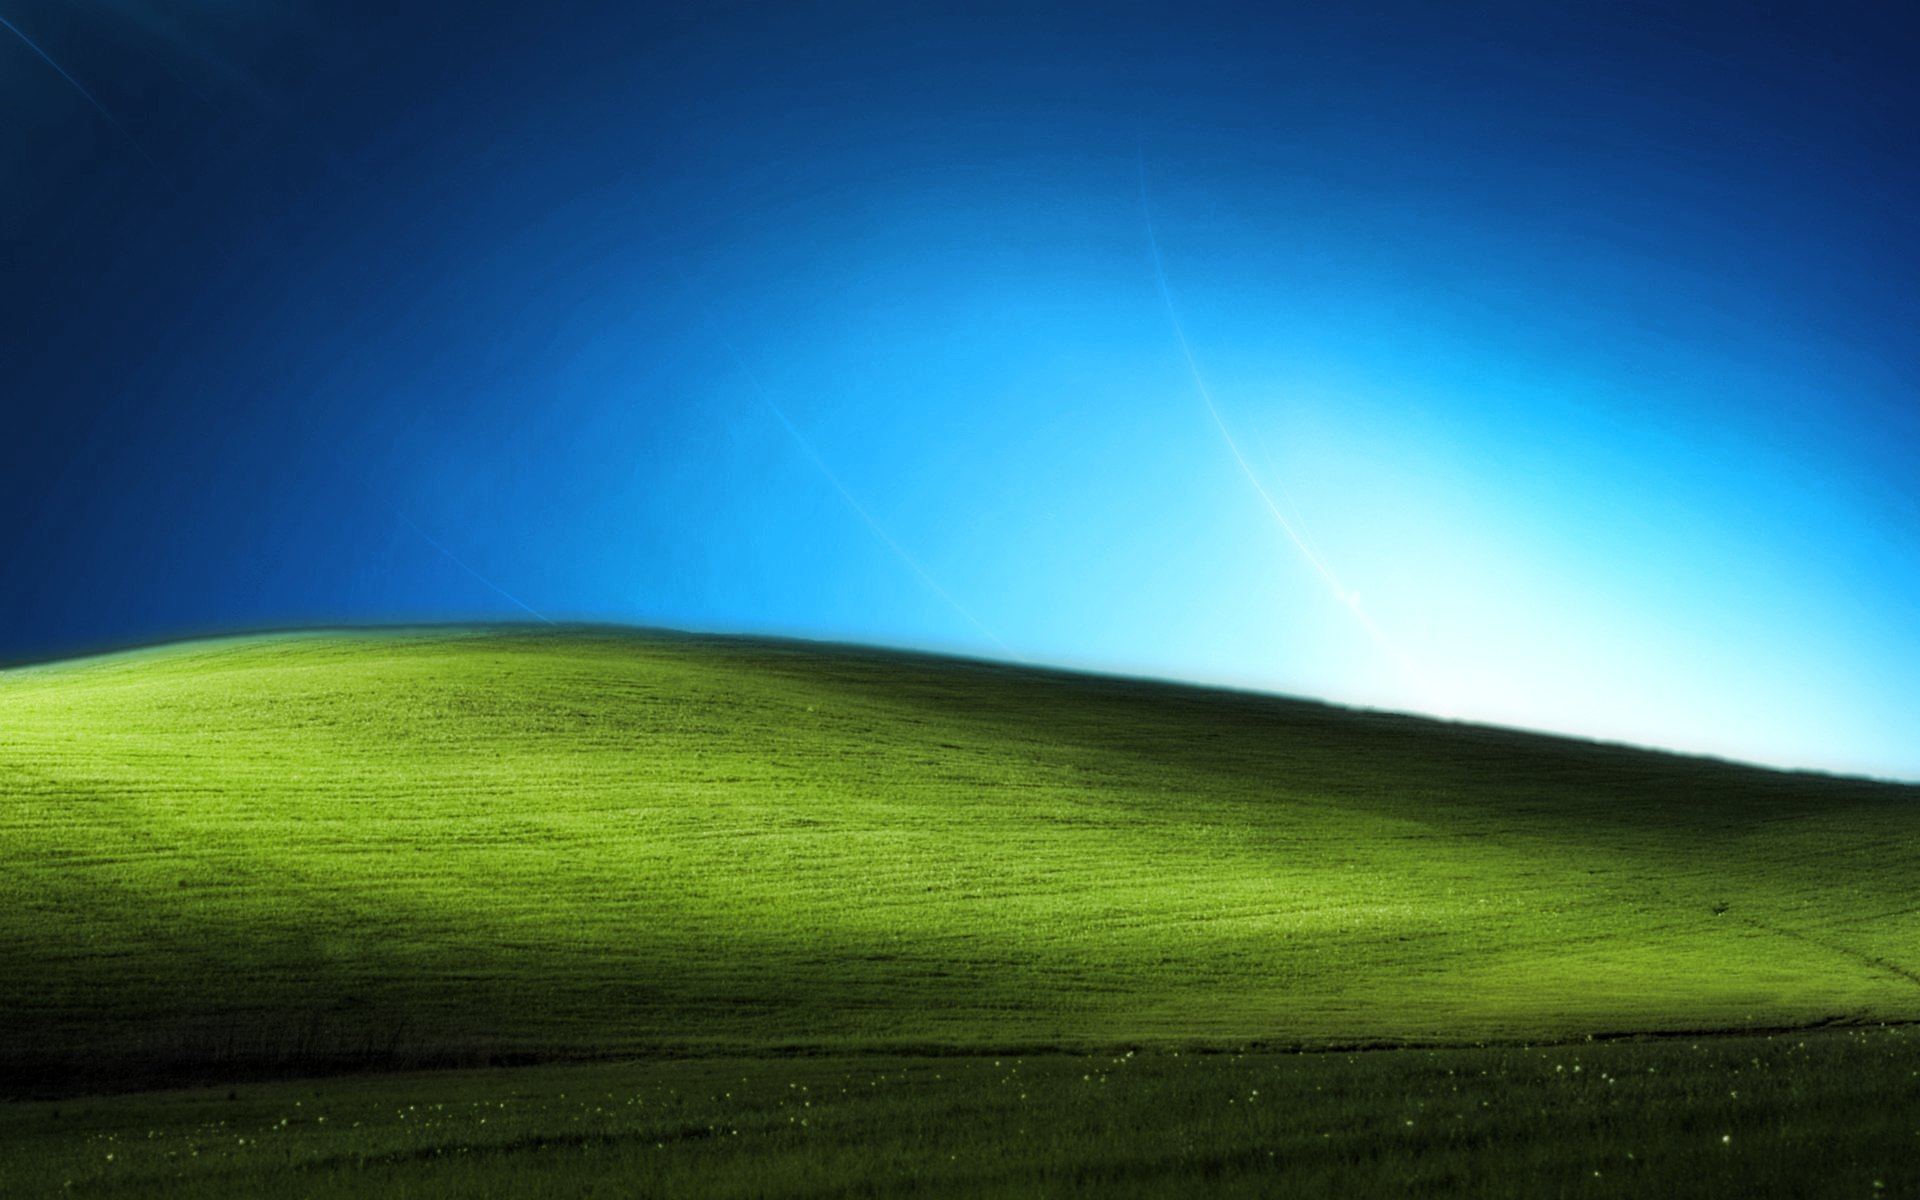 Windows XP Wallpapers 1920x1080 Group 84